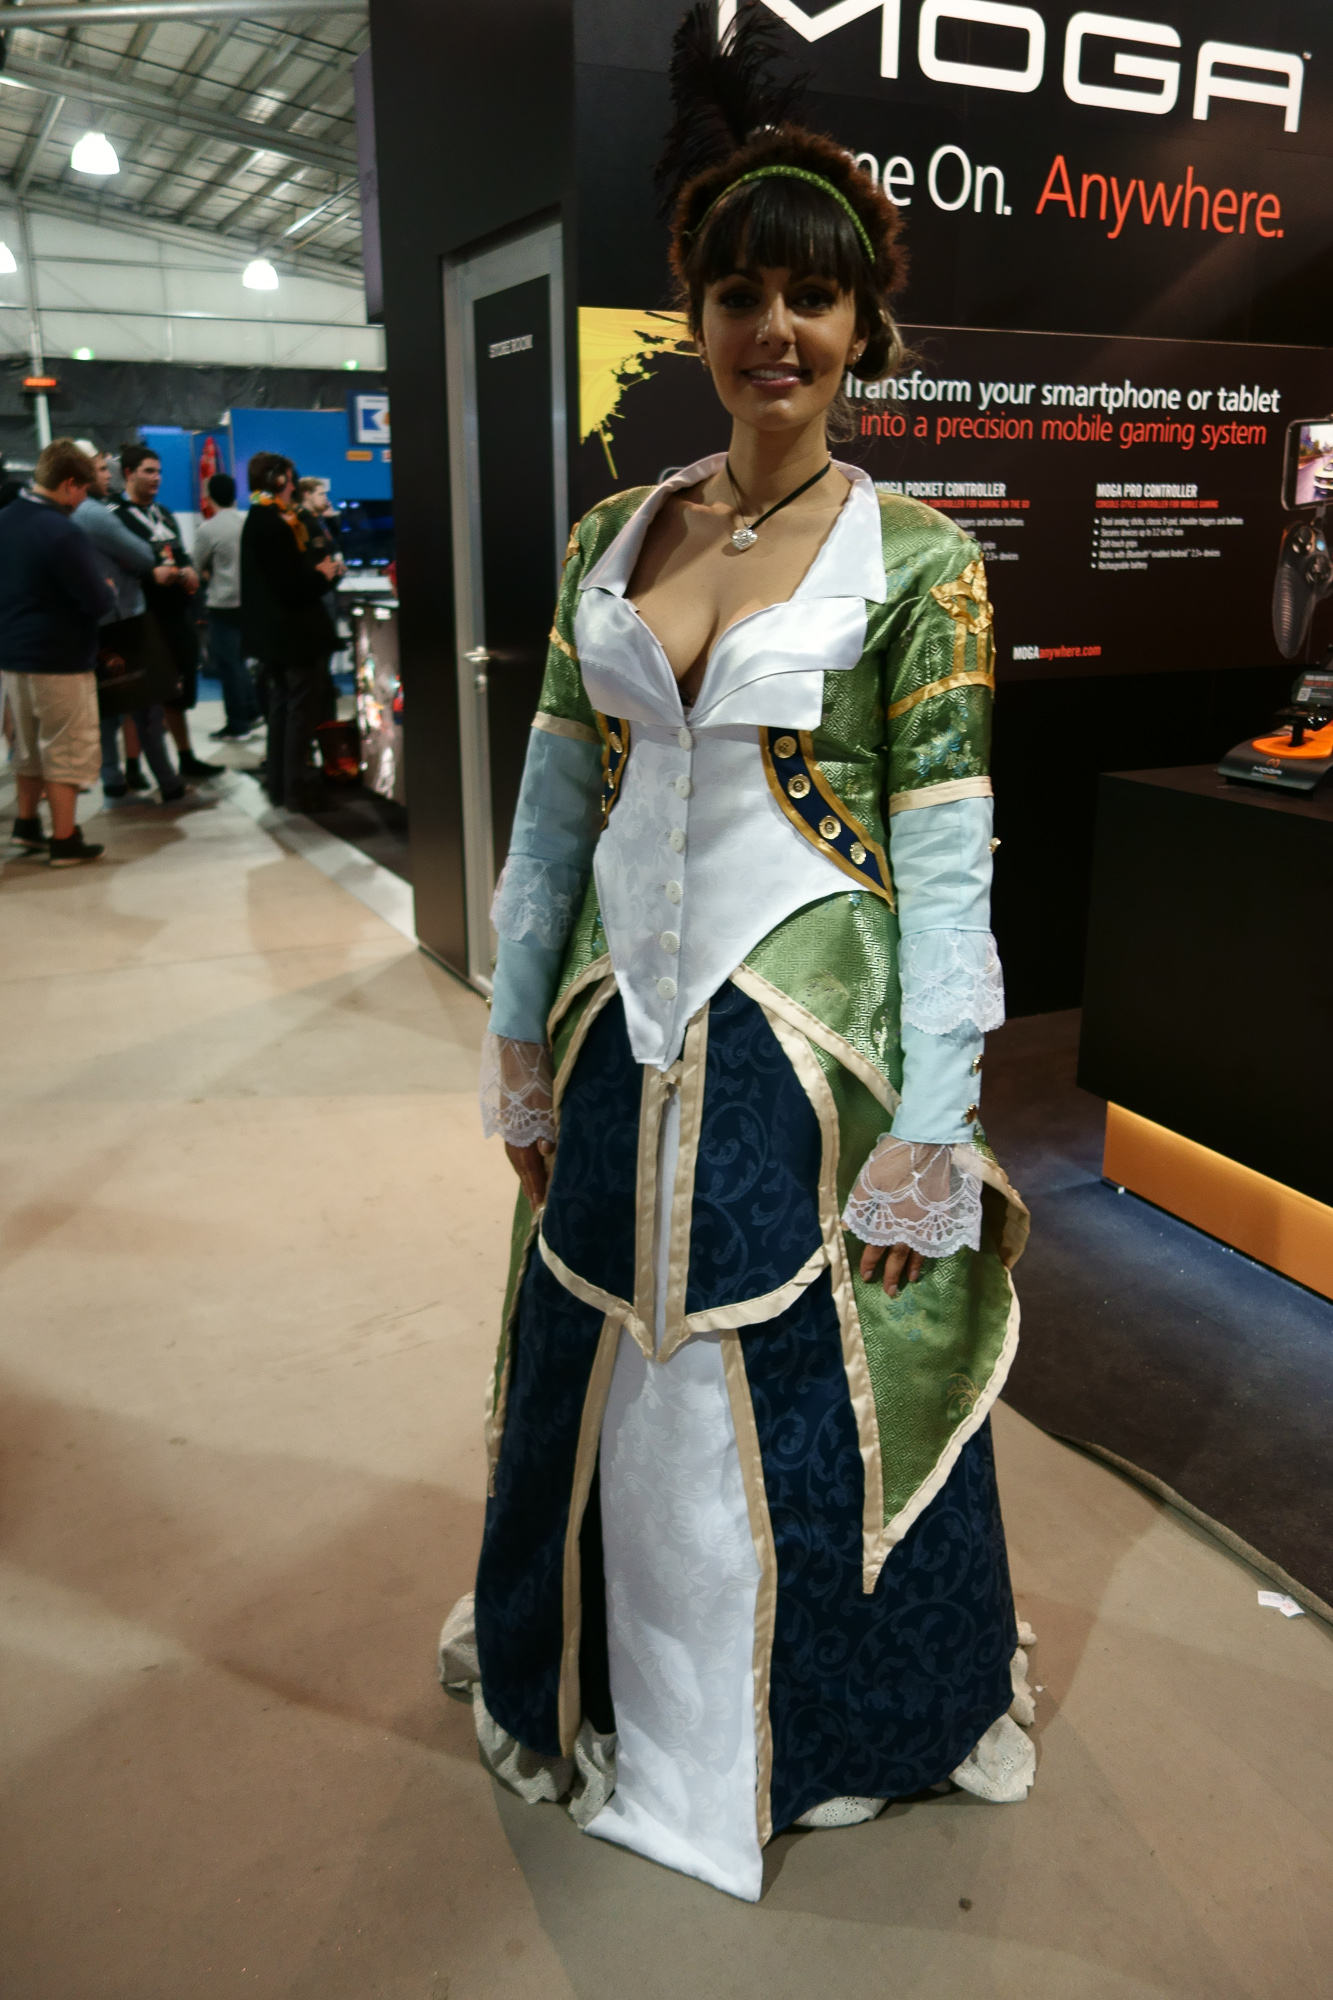 No idea who she was cosplaying, but she had an impressive, uh, costume (that she made herself), so I took a photo